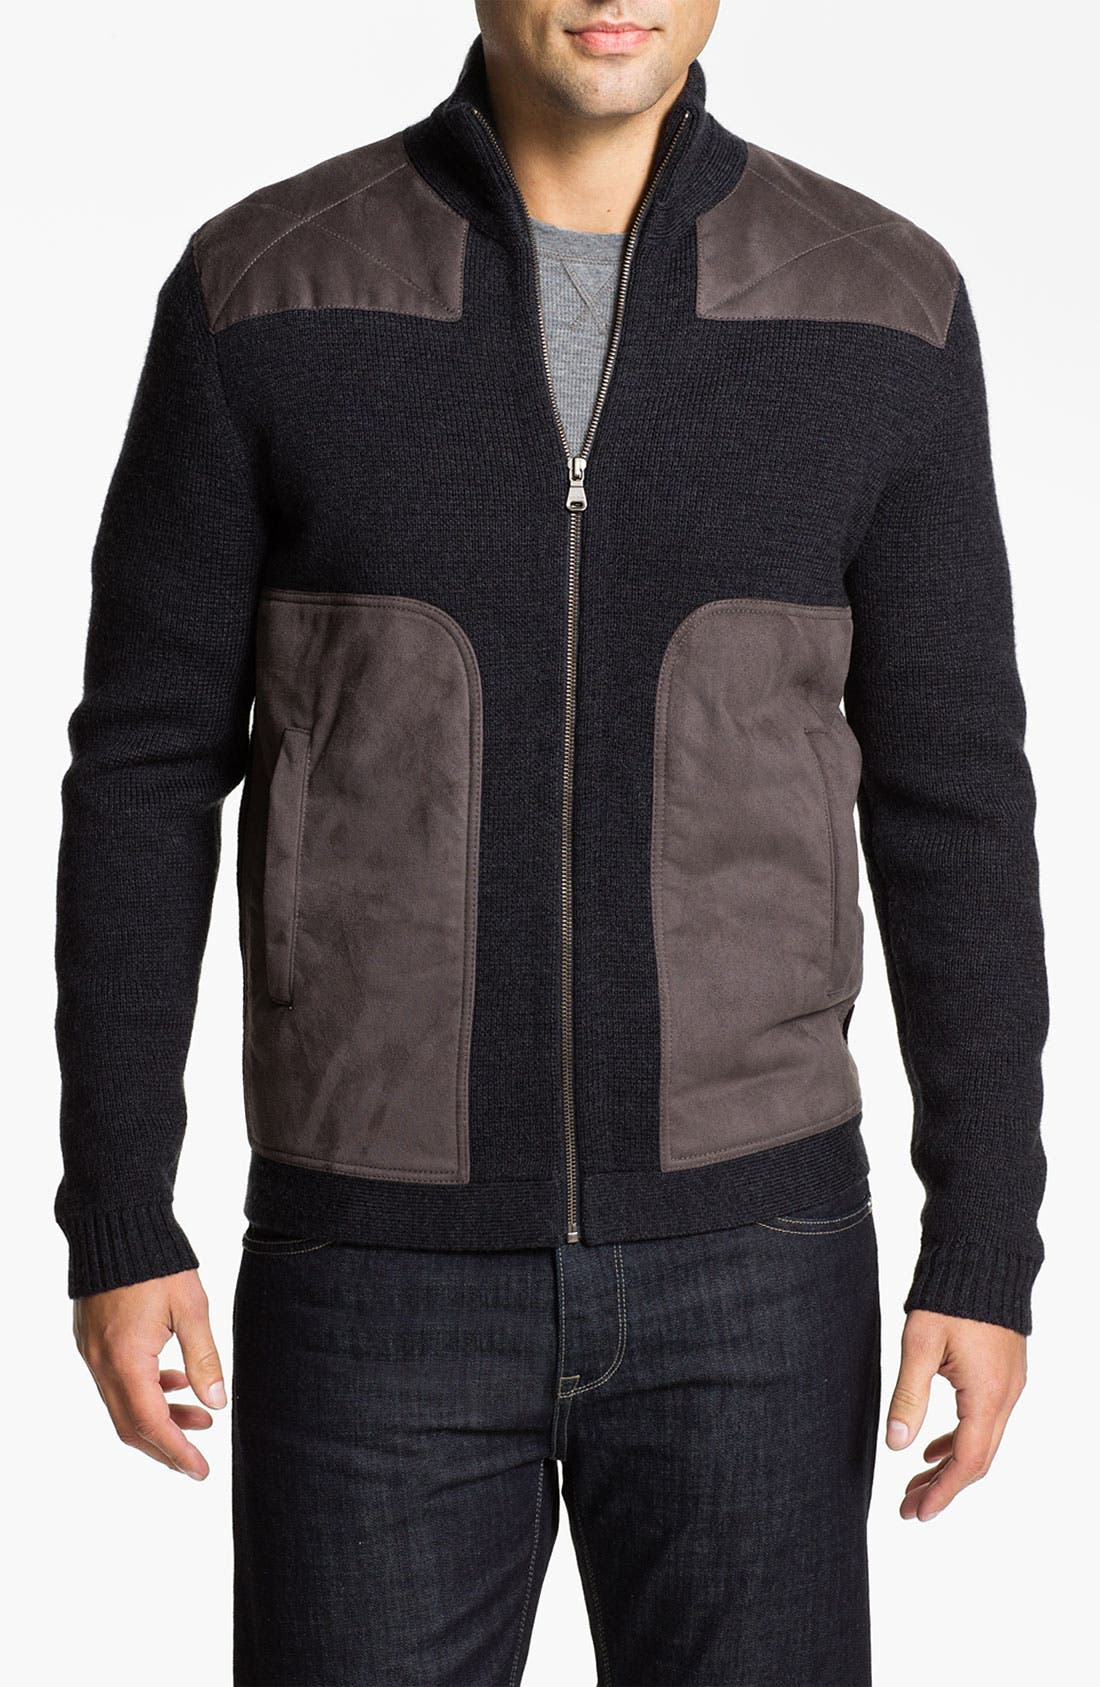 Main Image - BOSS Black 'Laurin' Wool Blend Zip Cardigan with Suede Trim